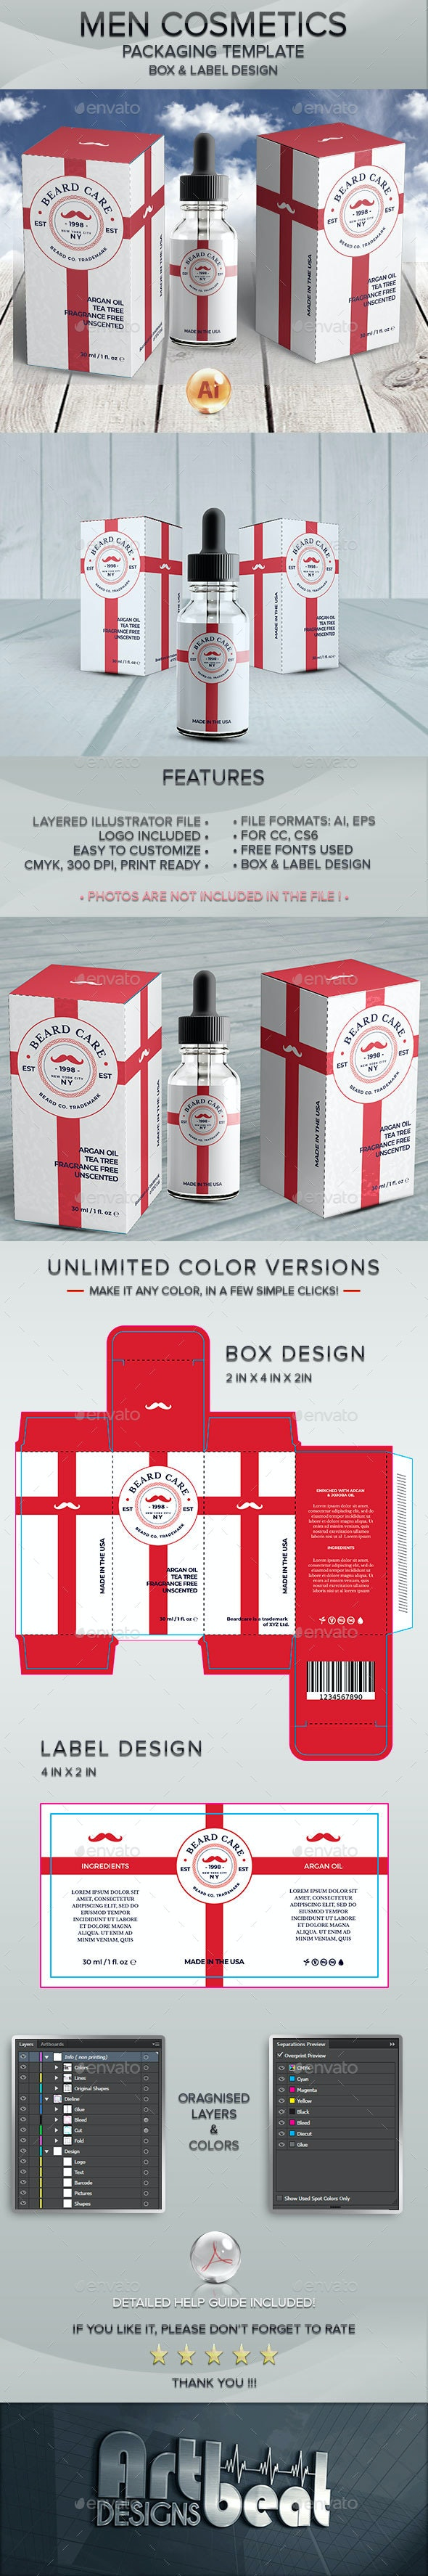 Beard Care Cosmetics - Packaging and Label Template - Packaging Print Templates